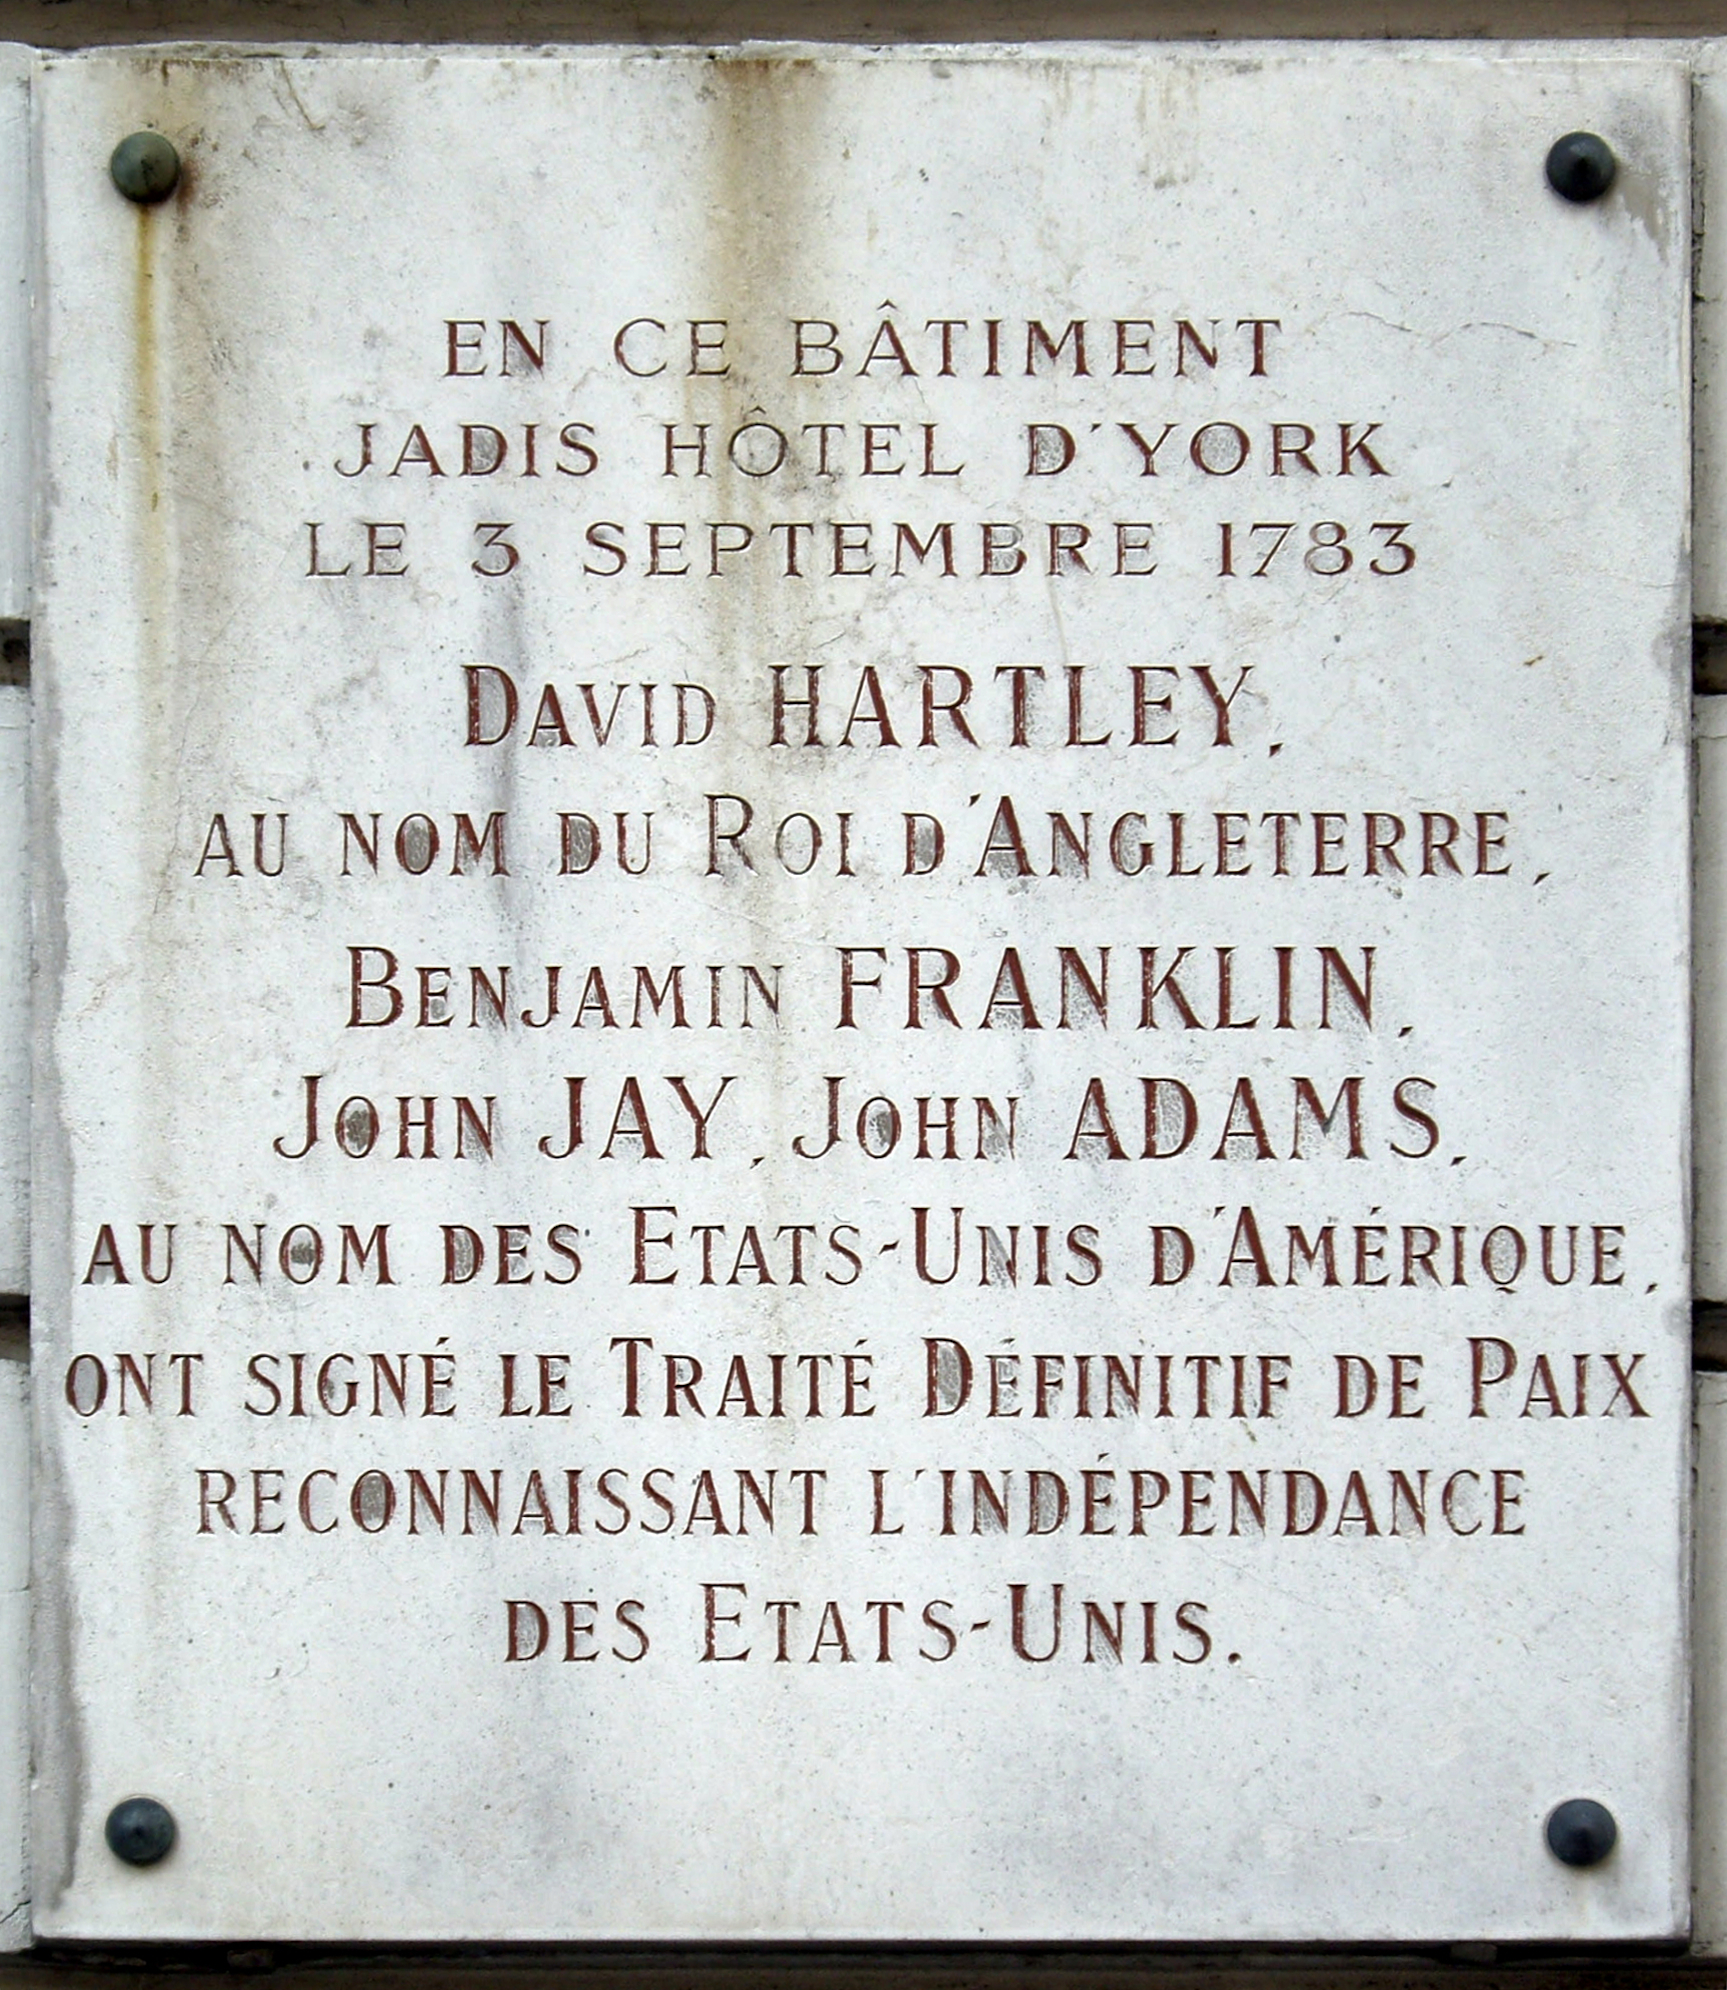 Plaque commemorating the Treaty of Paris of 1783